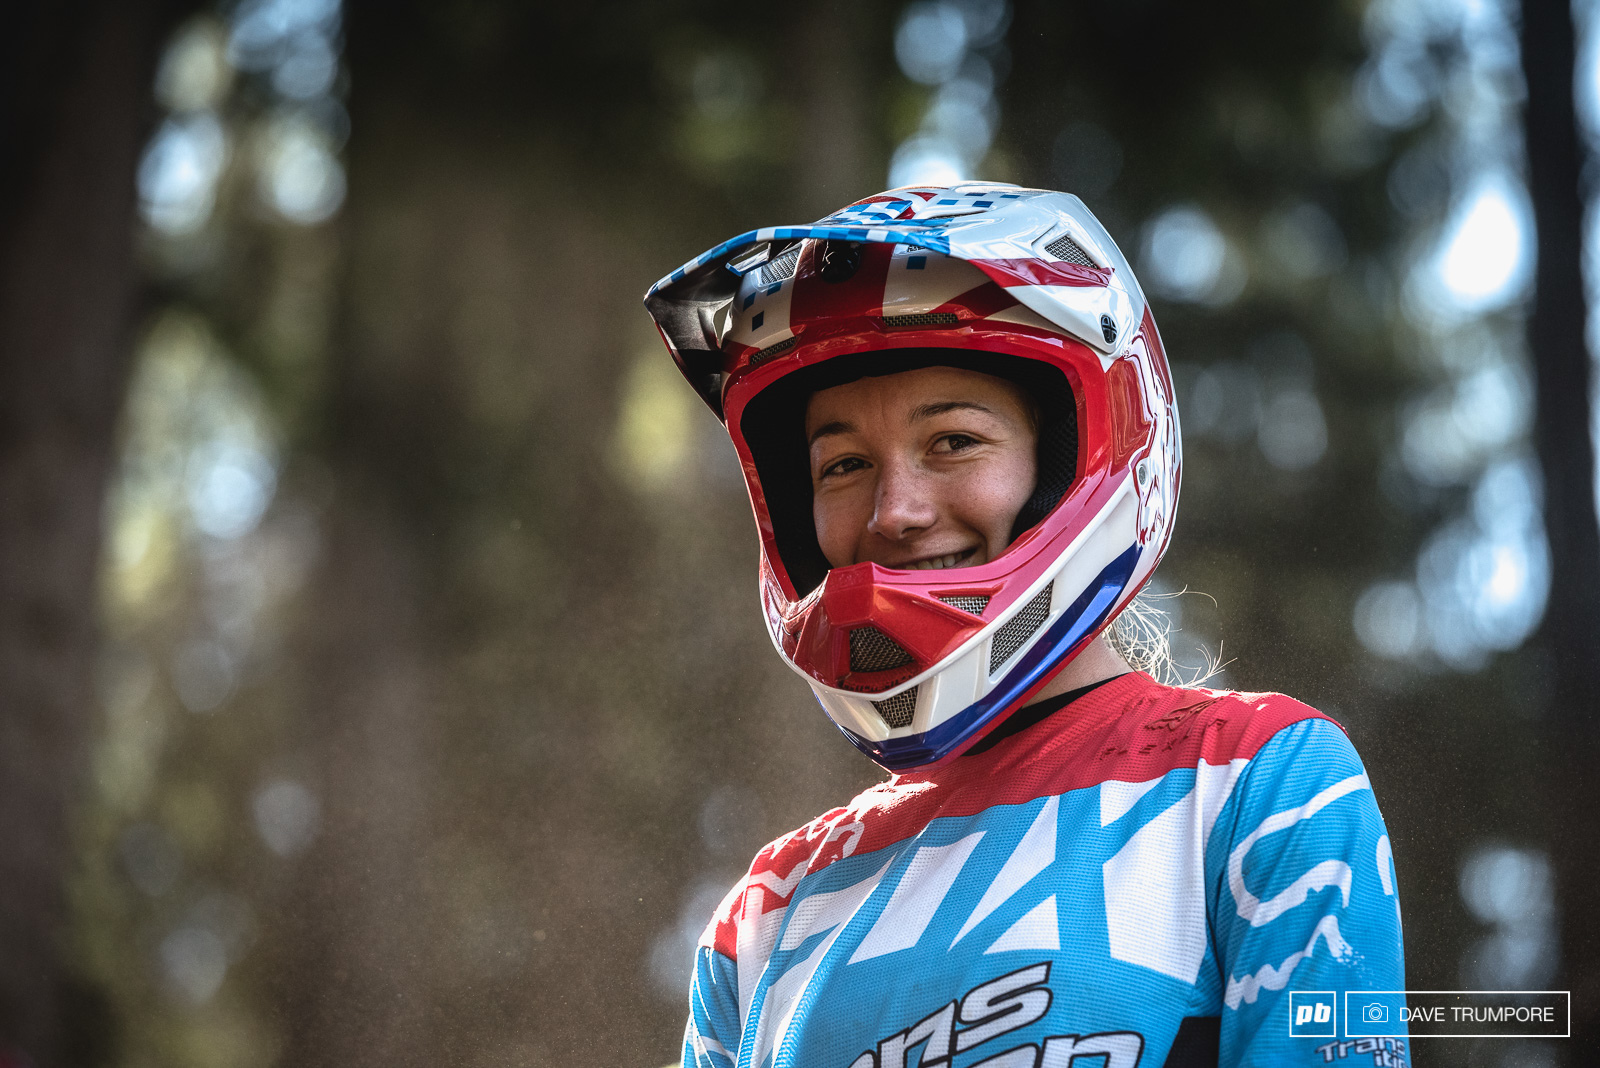 Tahnee Seagrave is a bit more confident in her line choice after a few runs than she was yesterday during track walk.